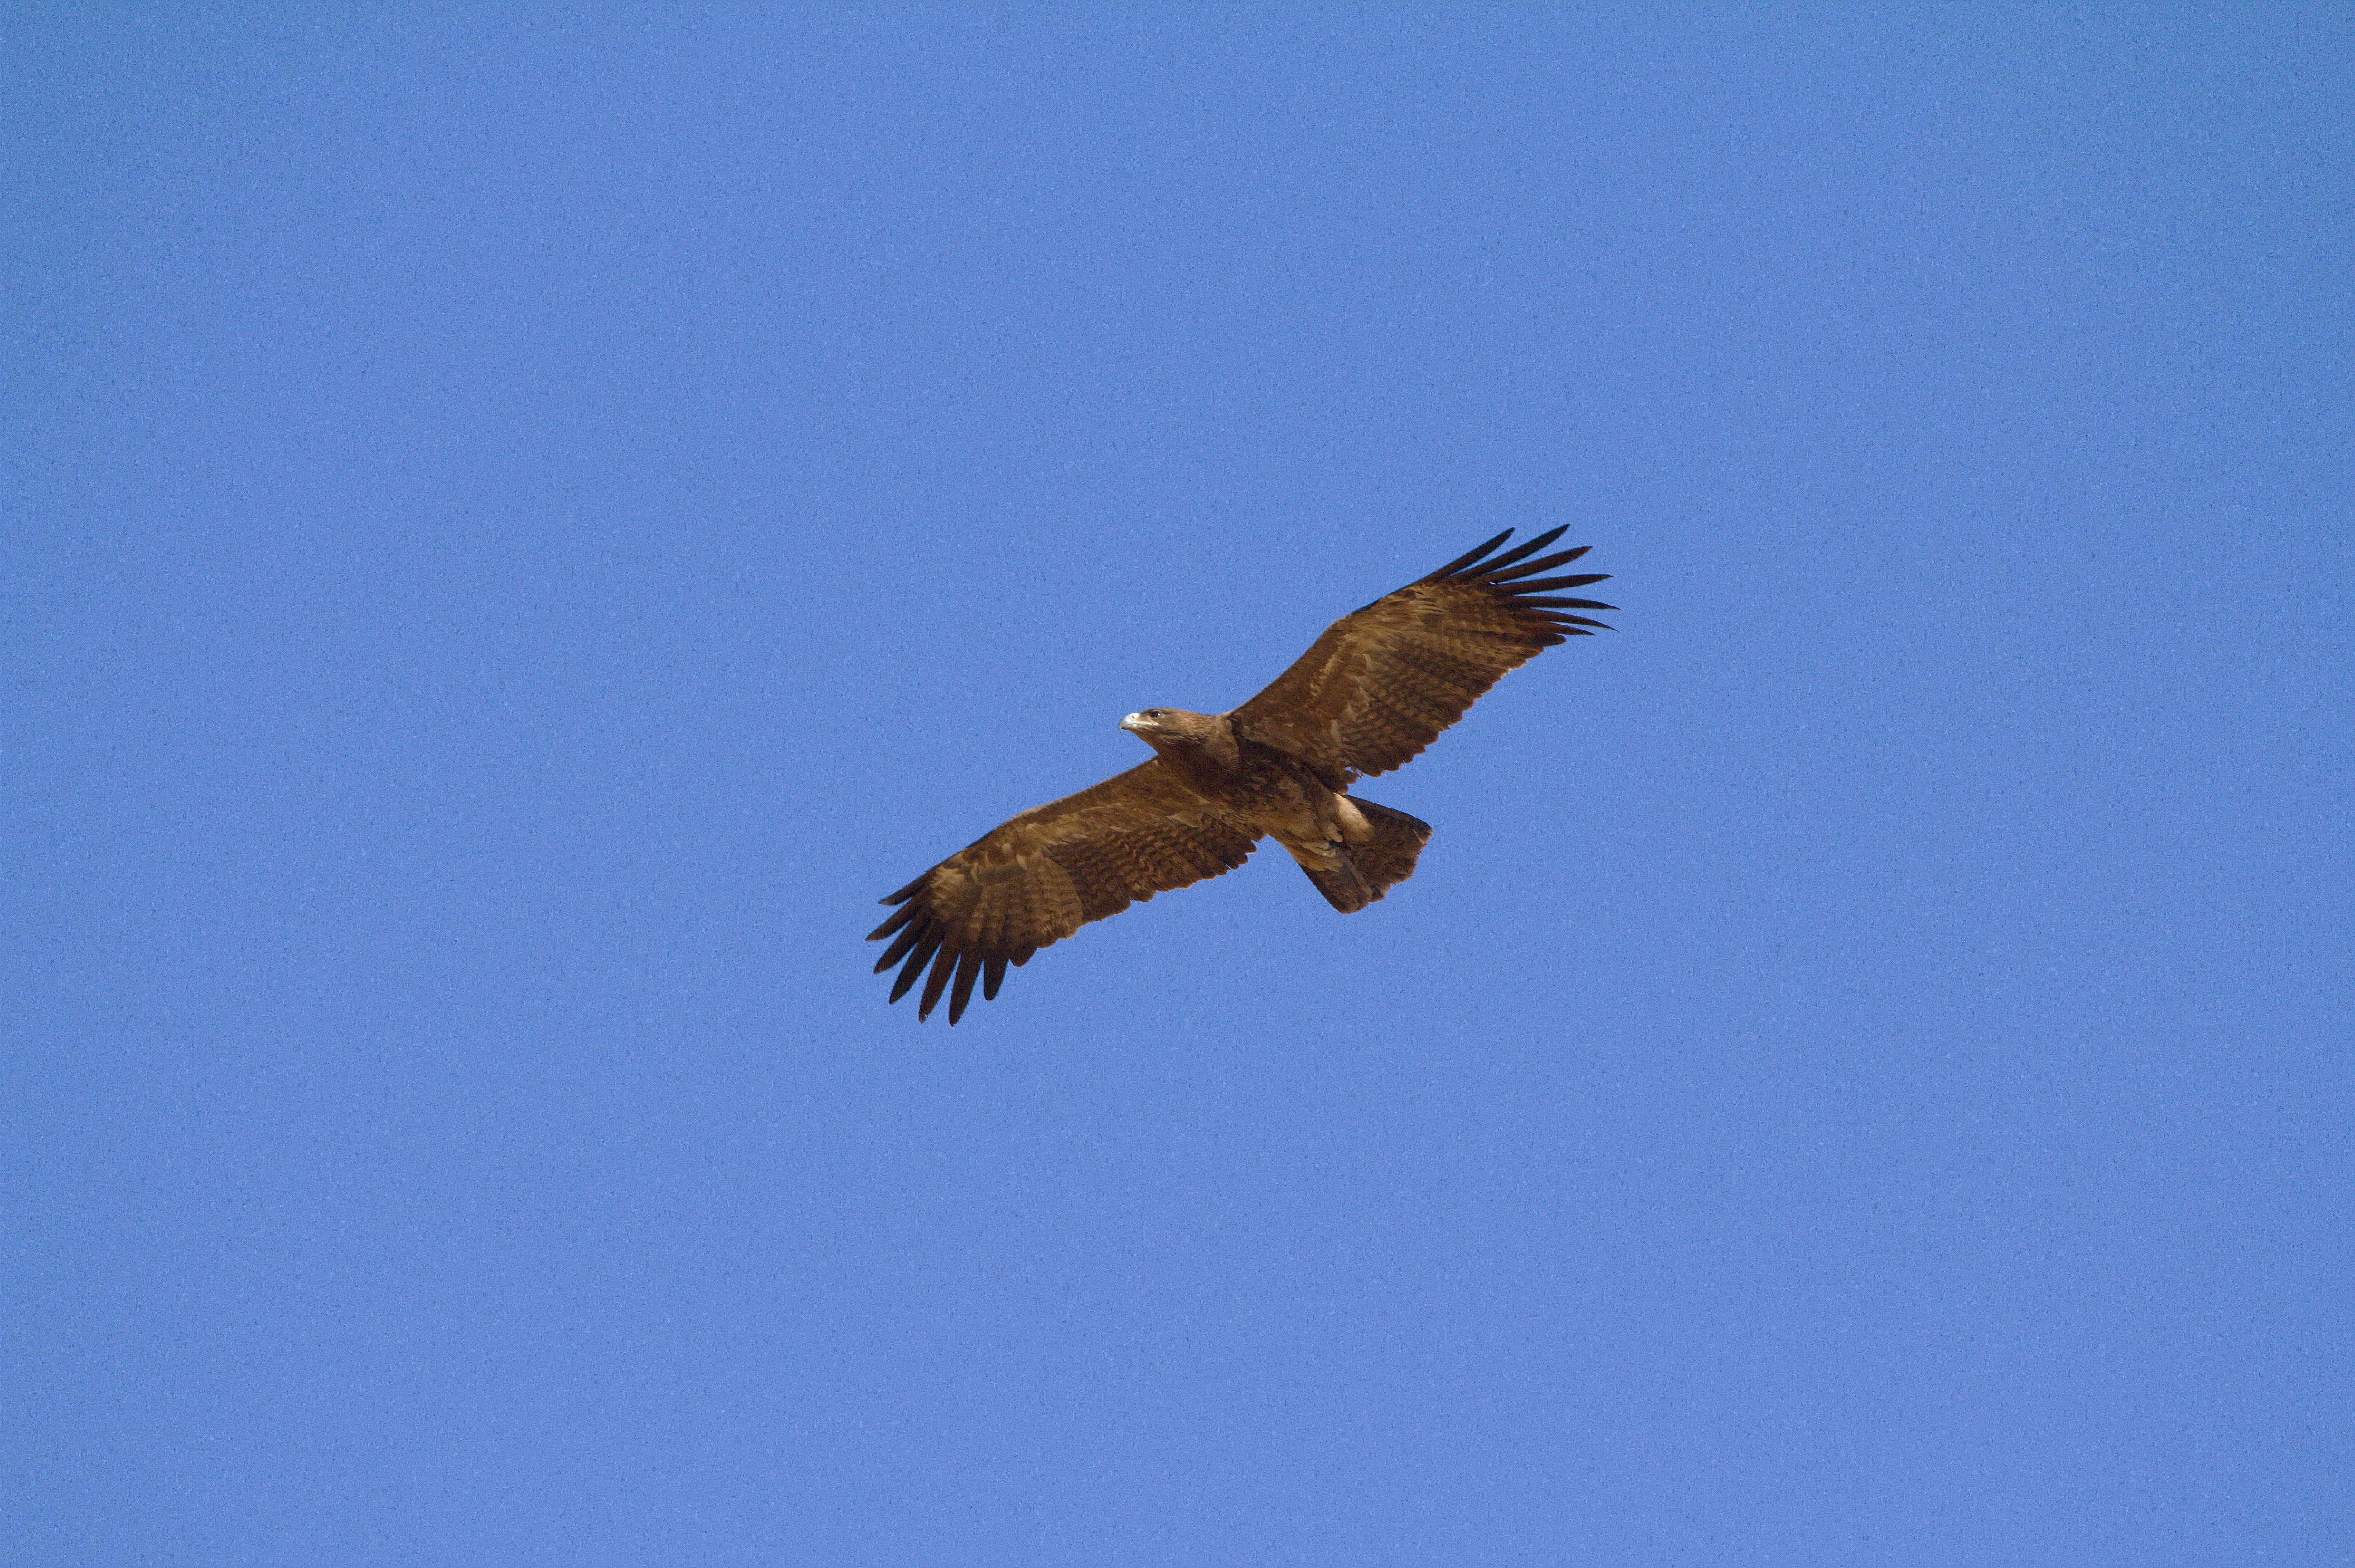 File:Indian Spotted Eagle in flight view.jpg - Wikimedia Commons